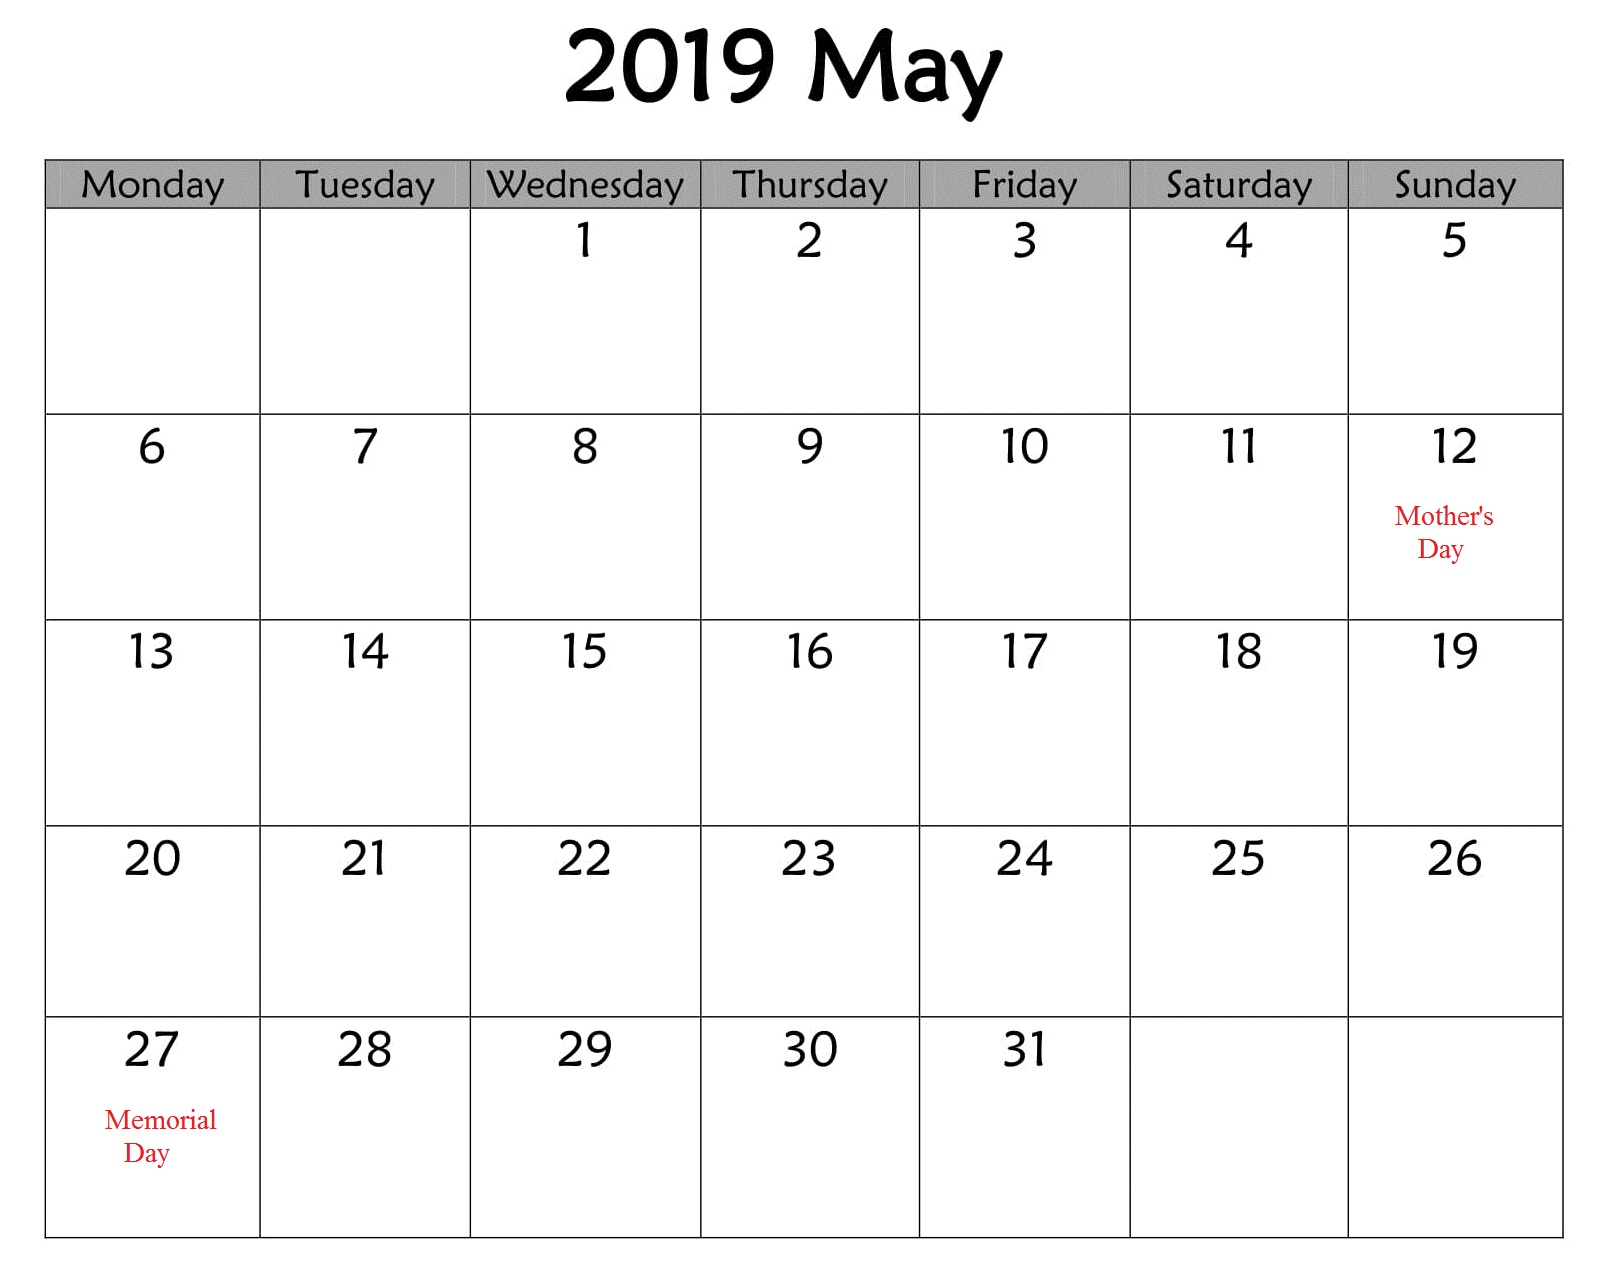 Notes May 2019 Calendar With Holidays